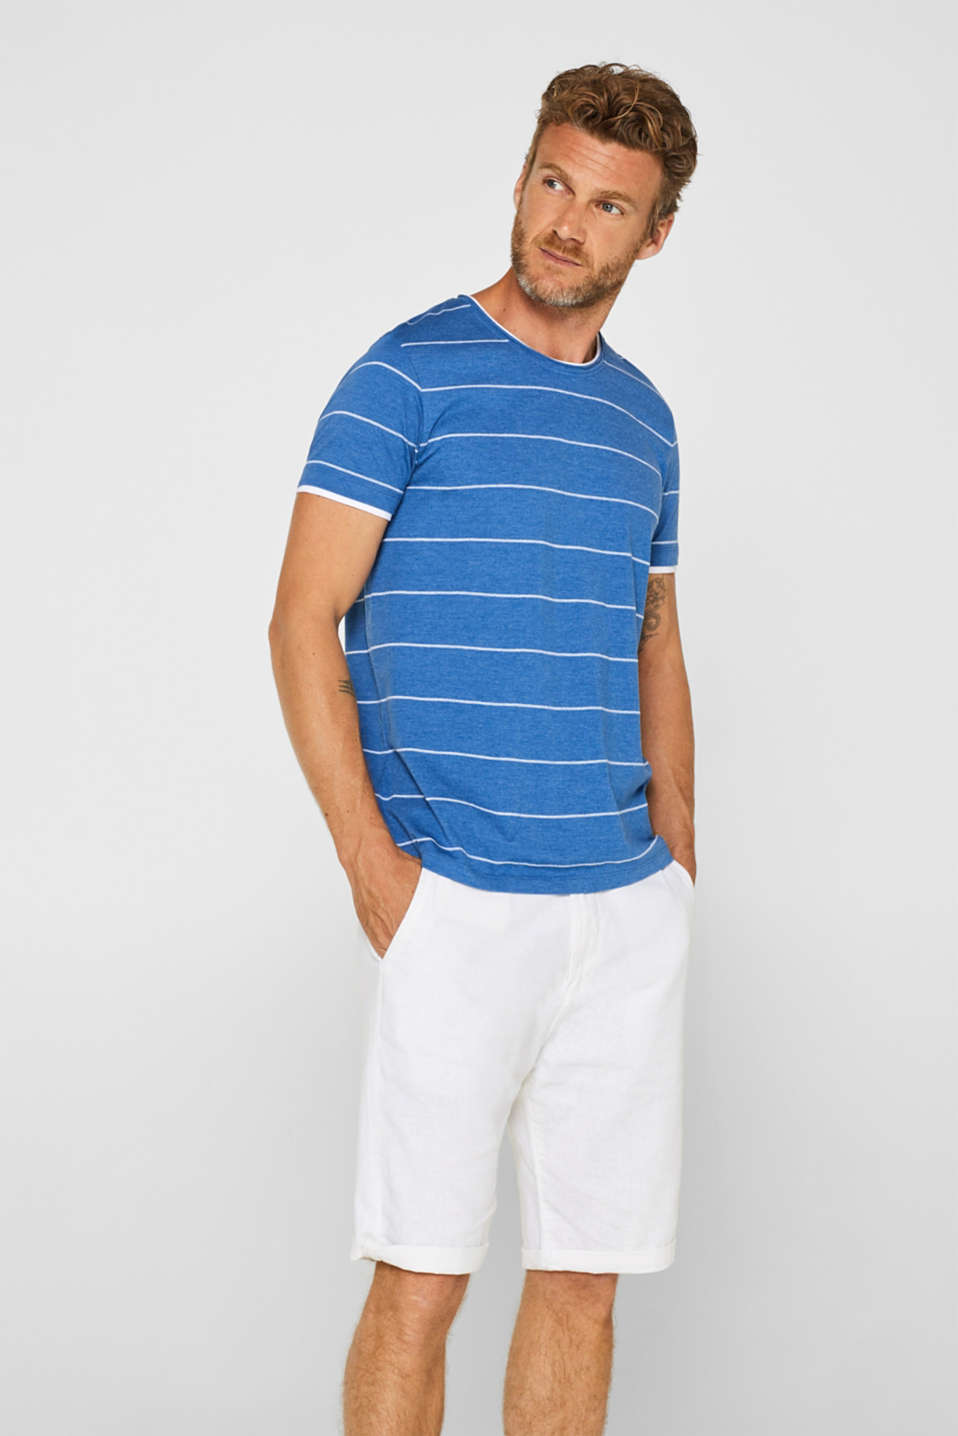 edc - 100% cotton-jersey tee with textured stripes